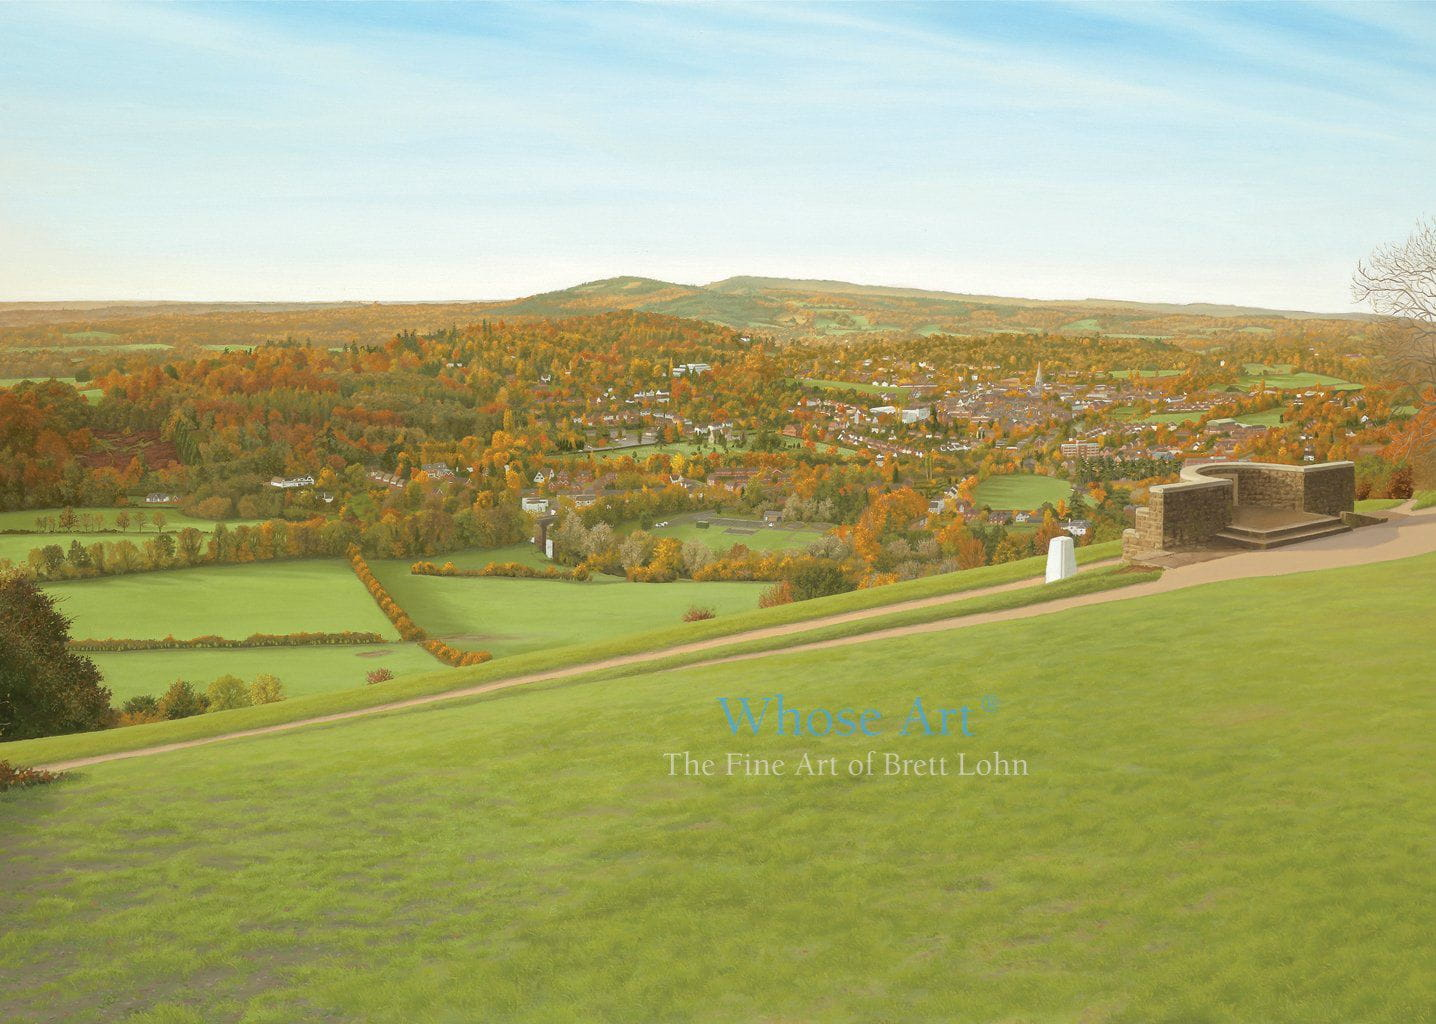 Landscape Greeting Card showing a painting of the view from the National Trust's Box Hill, across the Downs, in autumn.